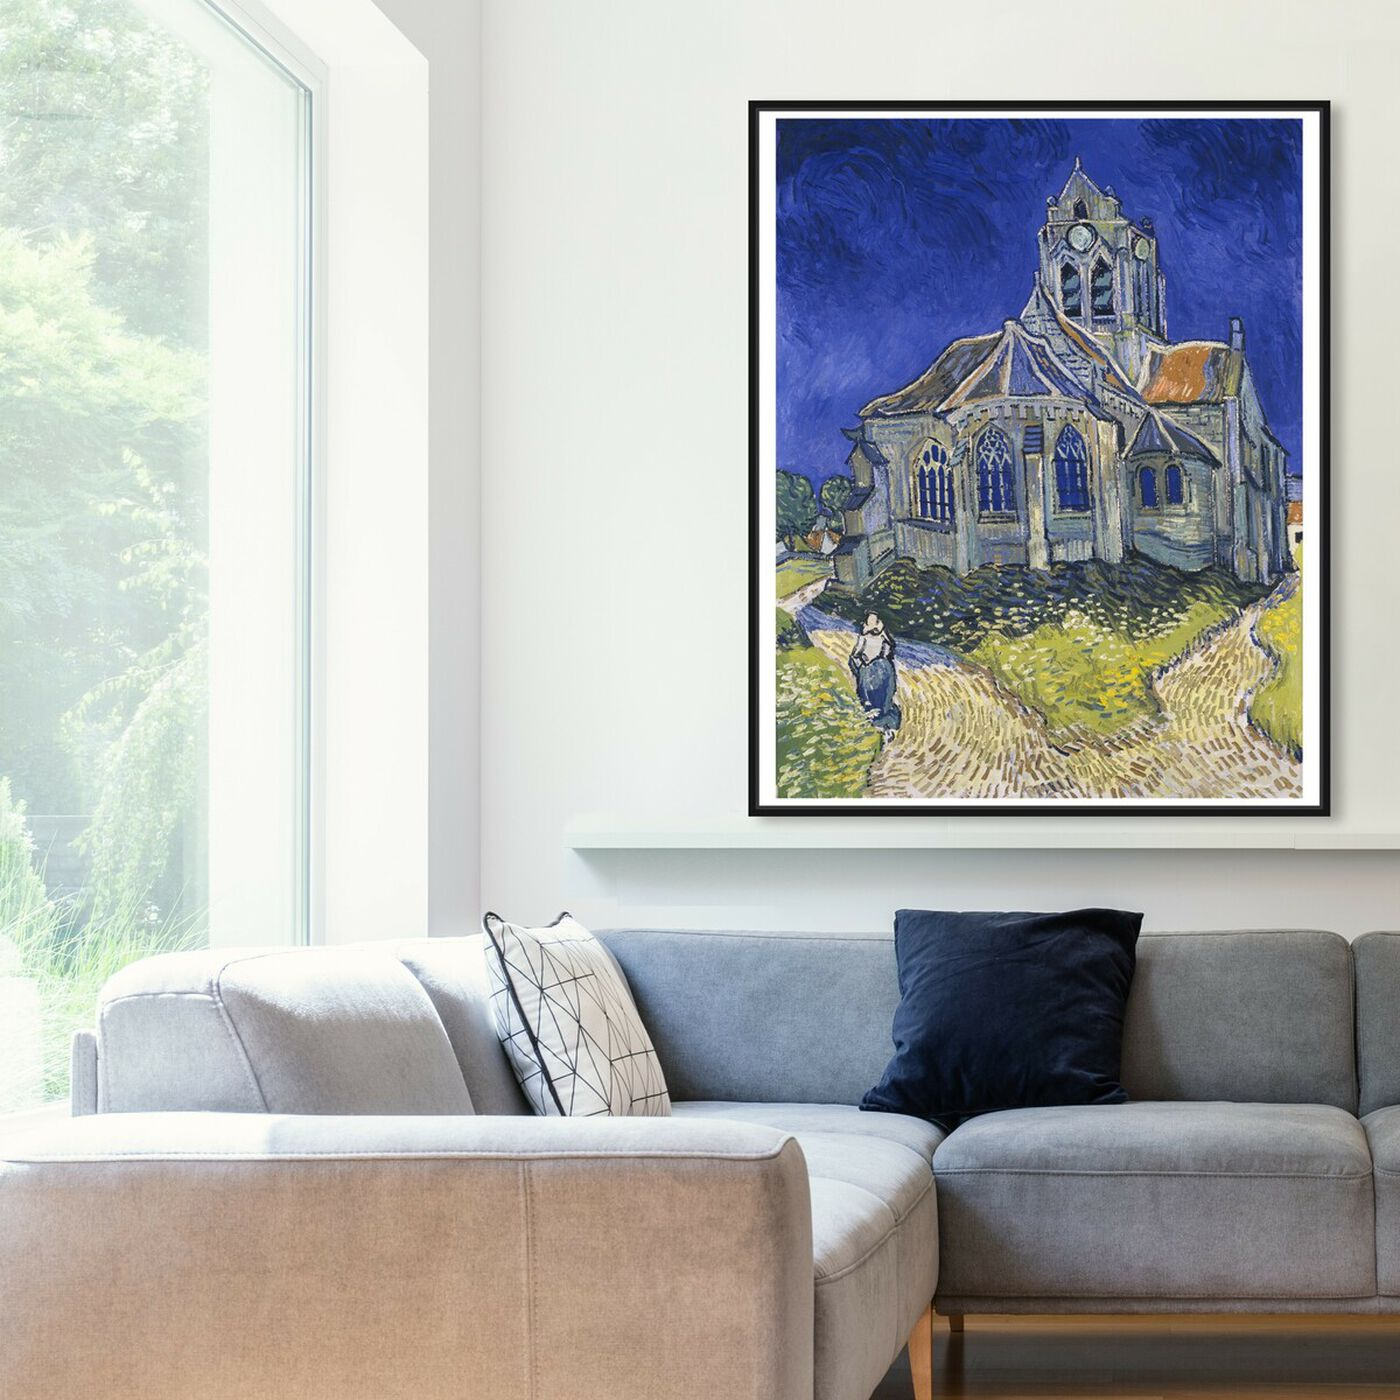 Hanging view of Van Gogh - The Church in Auvers Sur Oise featuring classic and figurative and impressionism art.